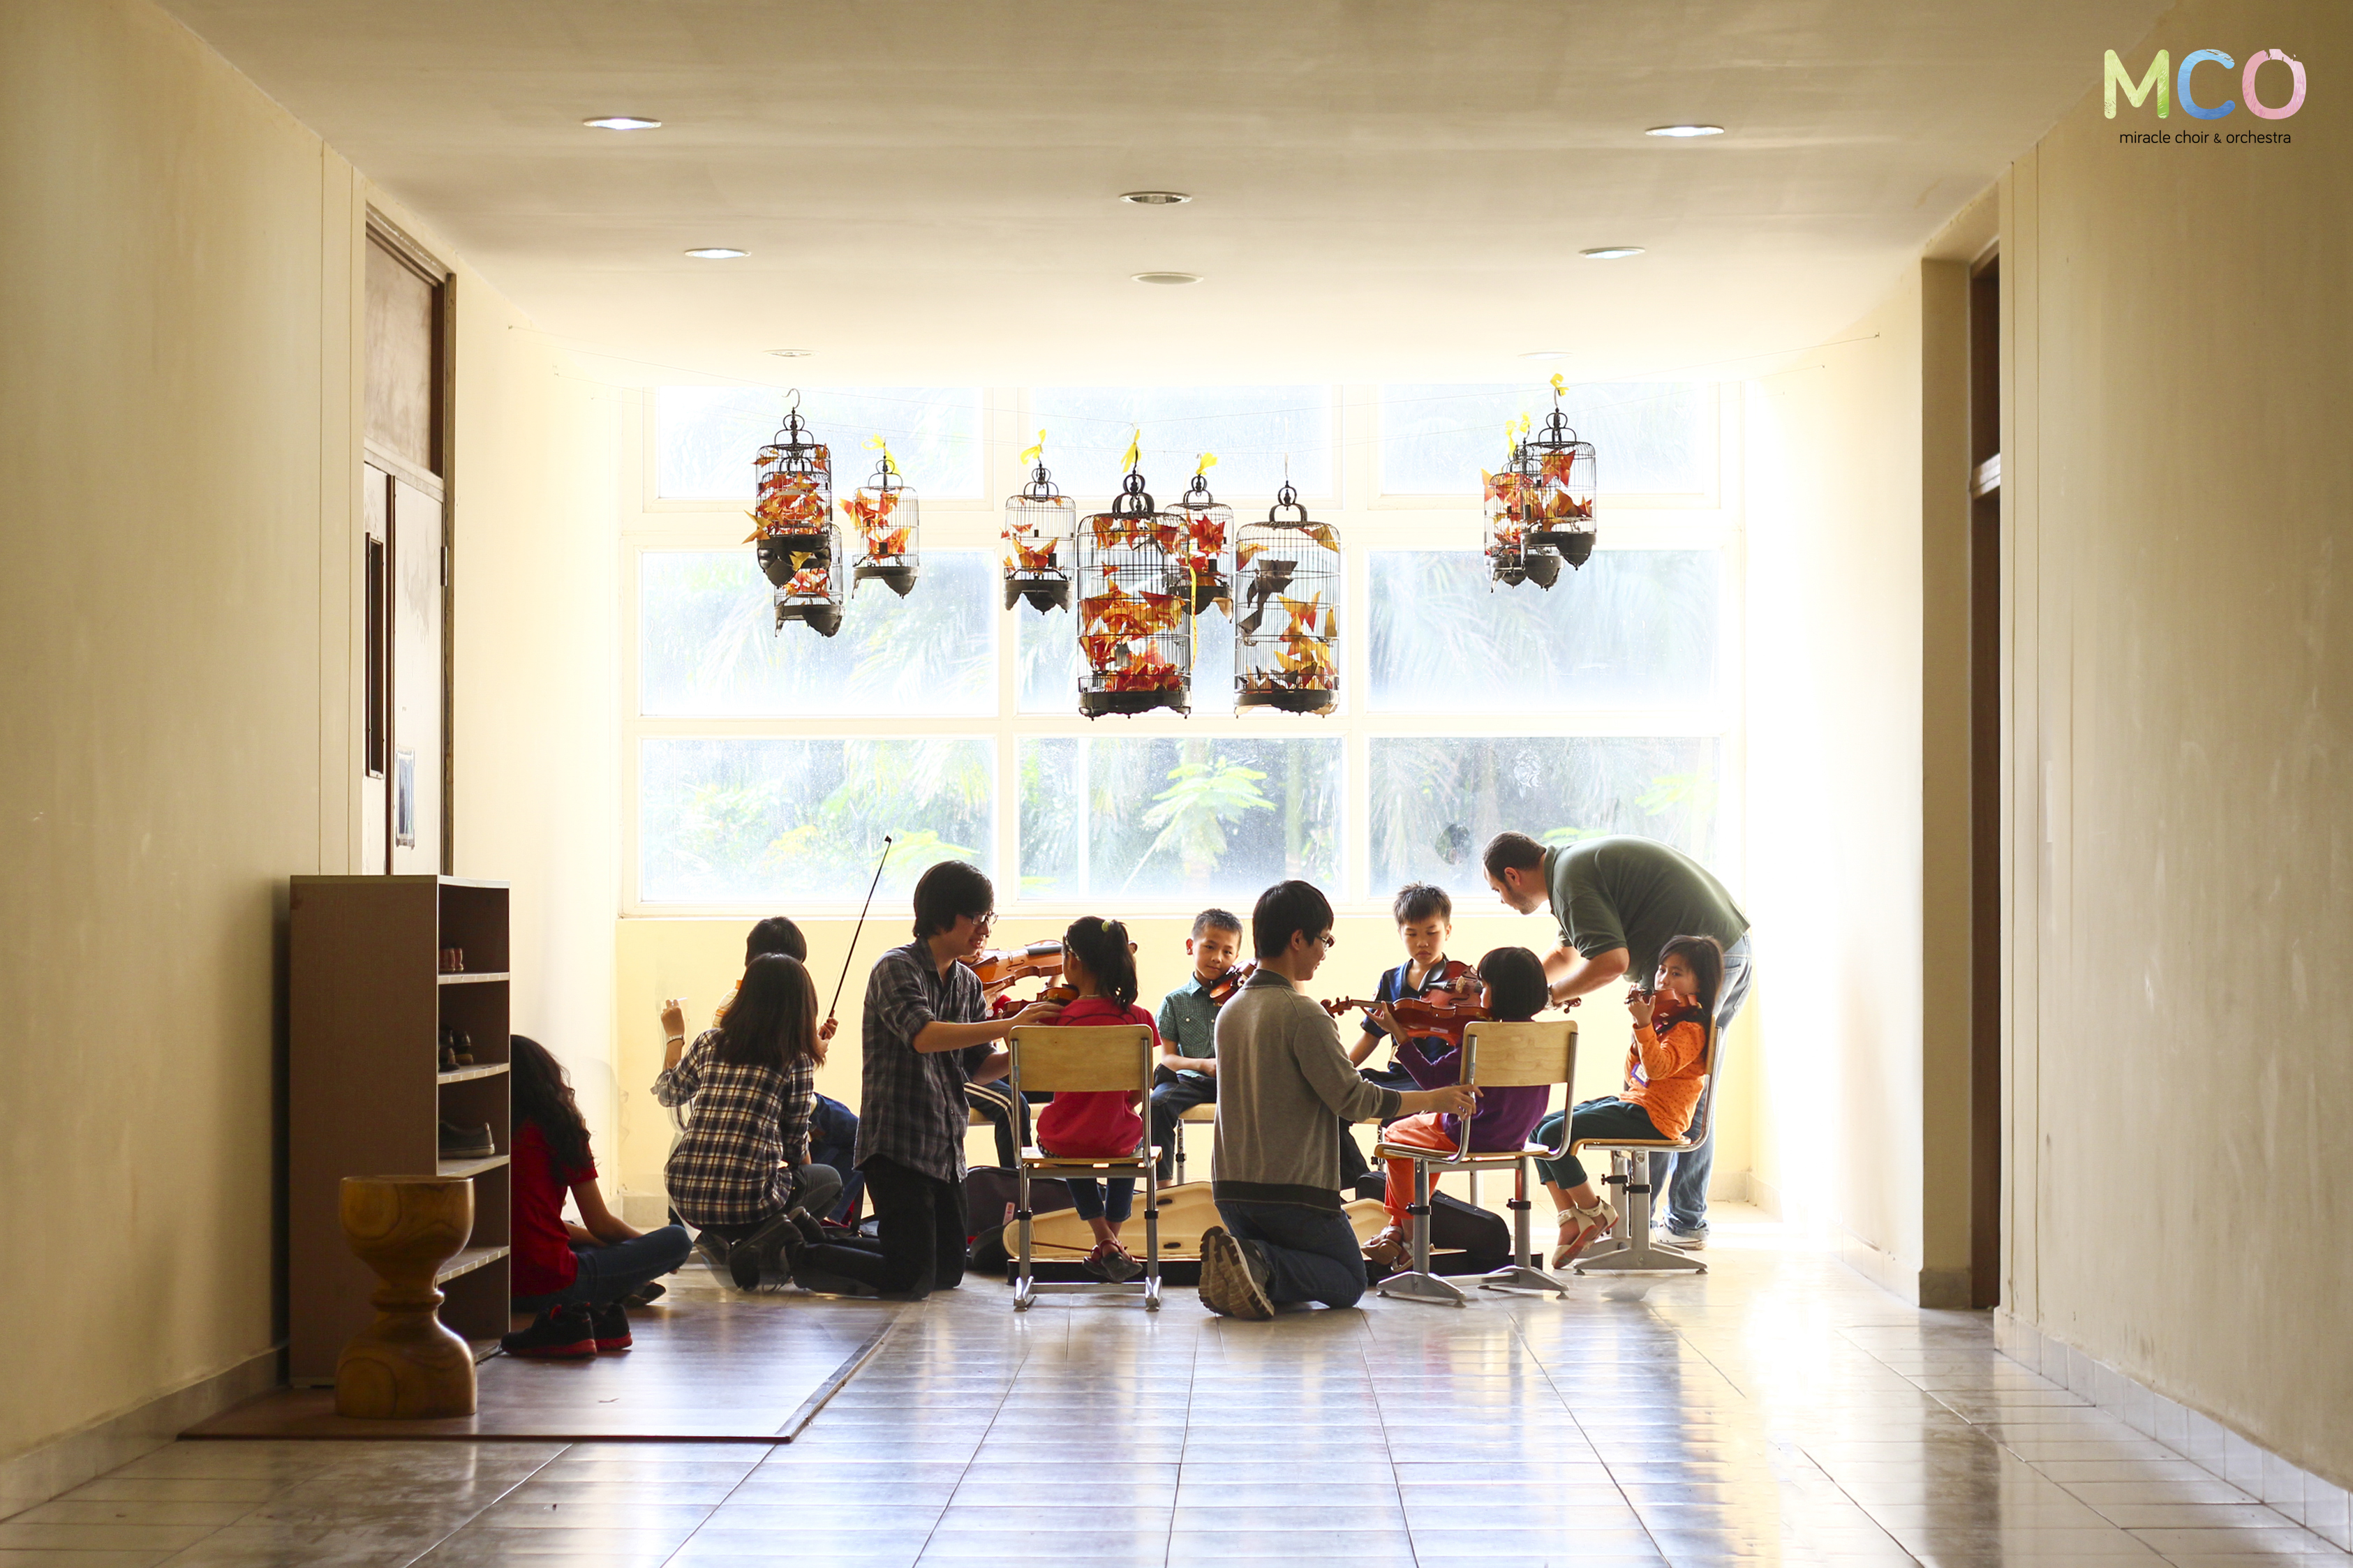 The Hanoi Miracle Choir and Orchestra: When music changes life